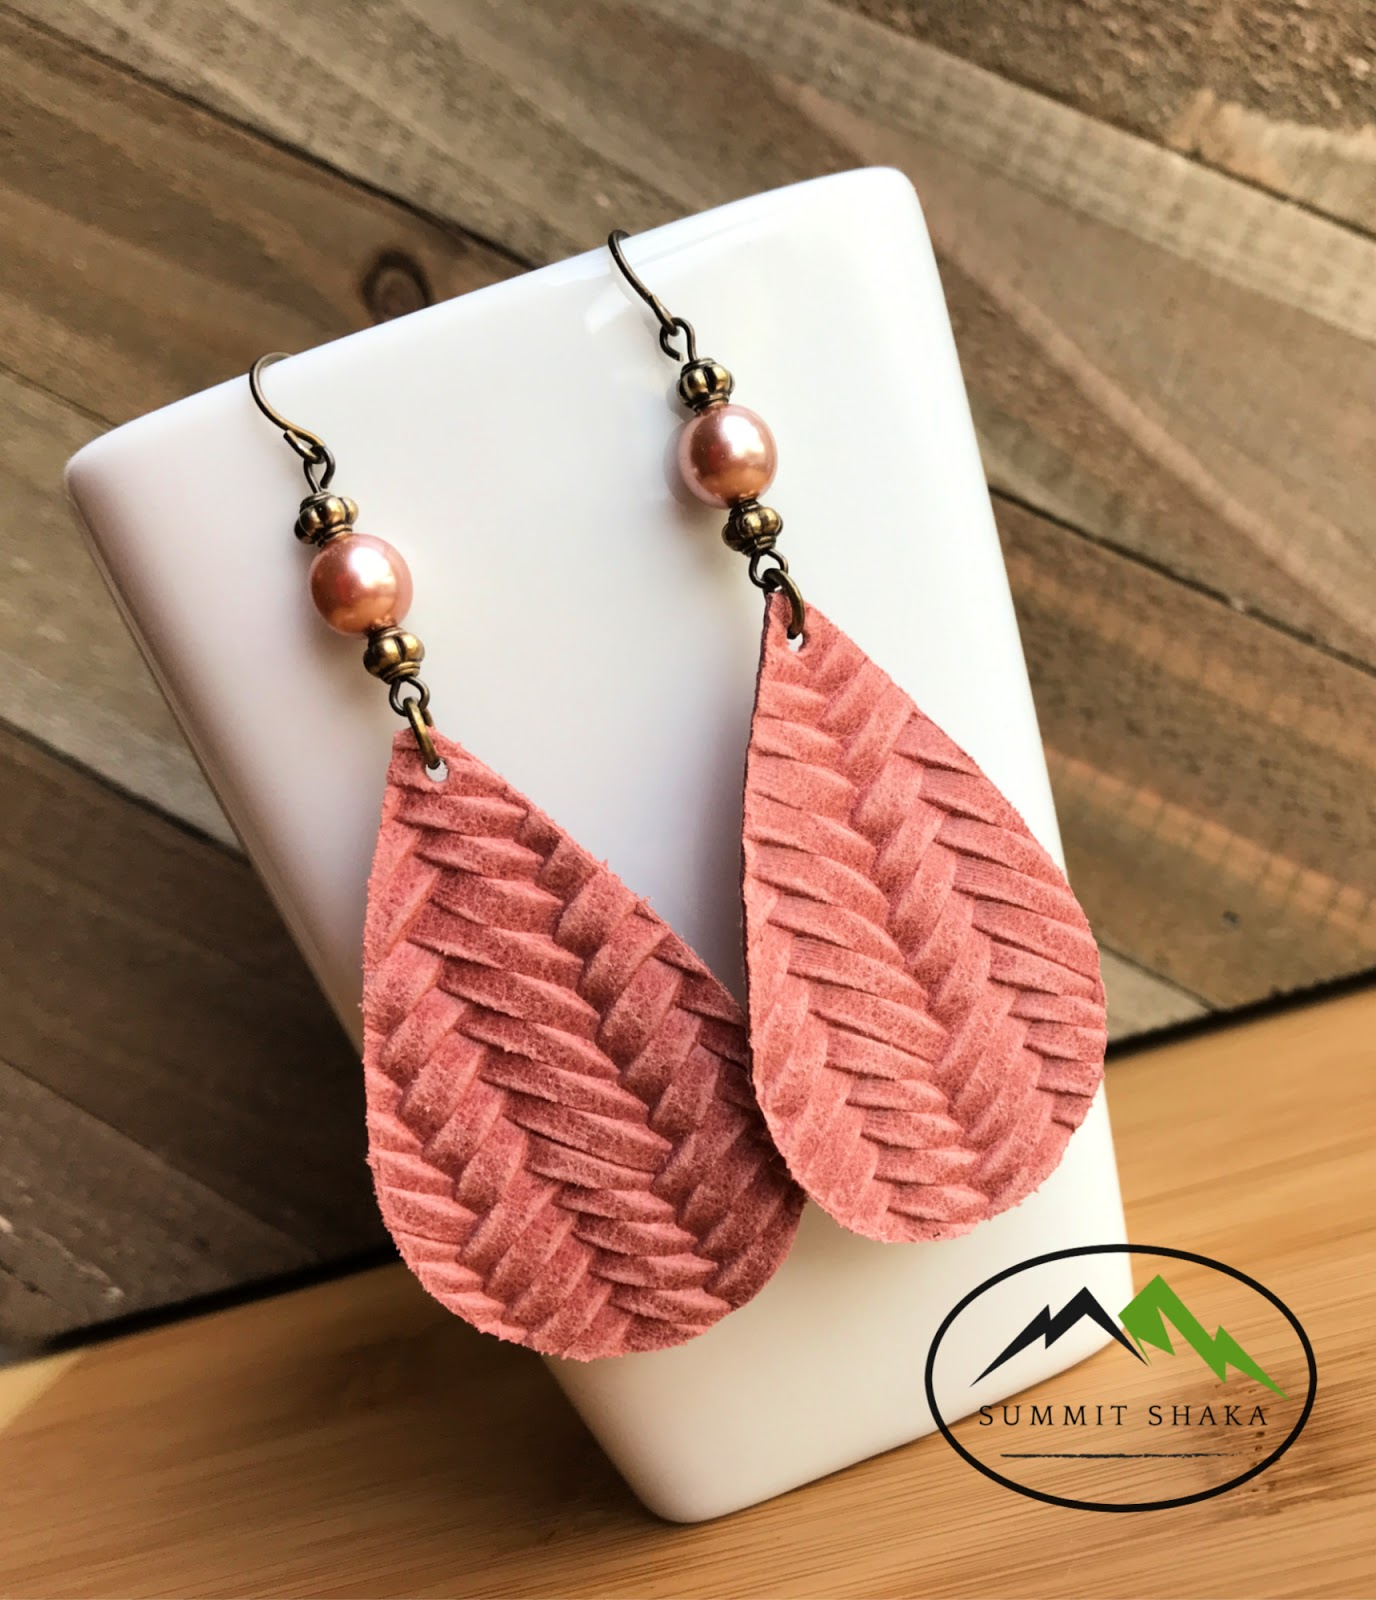 Leather Earrings by Summit Shaka